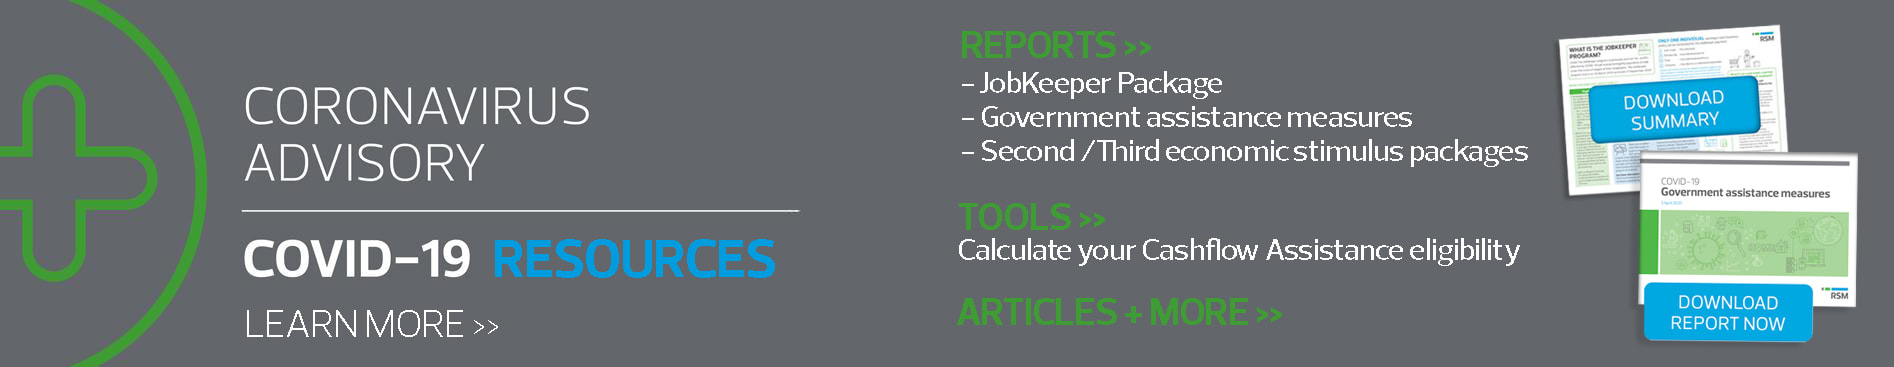 Visit the covid-19 resource center for information about JobKeeper, Cashflow boosts for employeers and government stimulus packages